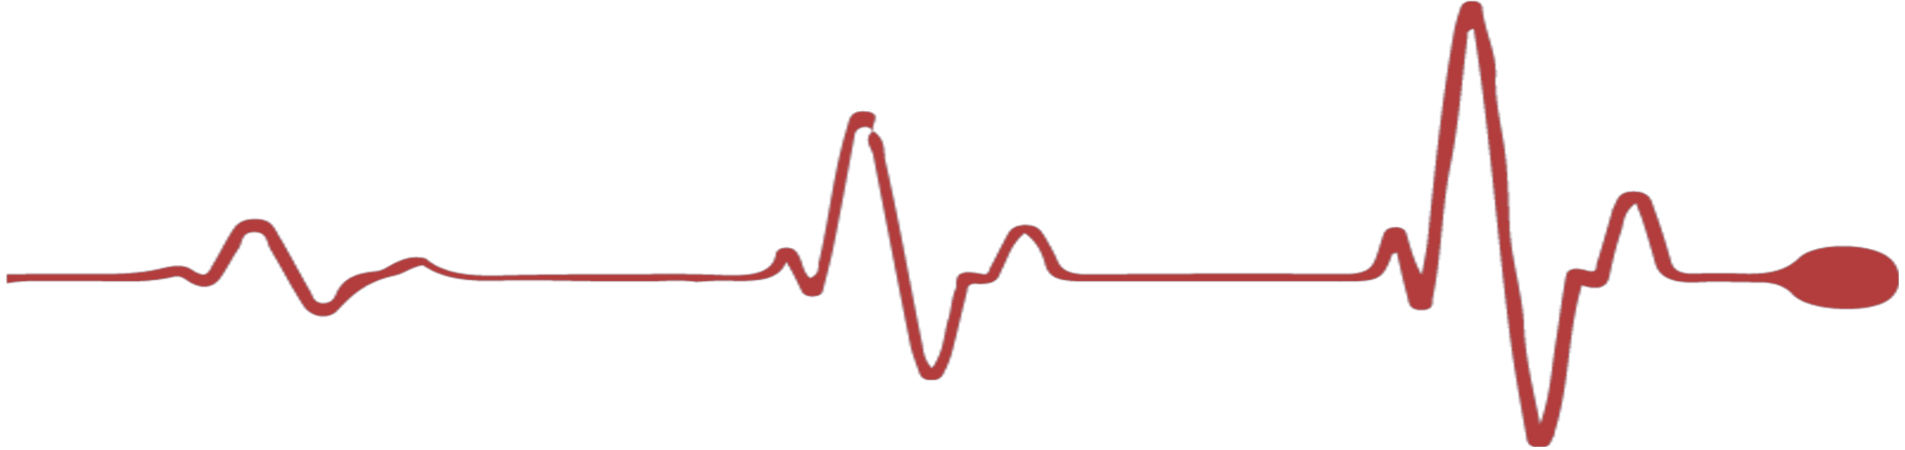 hight resolution of line clipart heart beat 11 heartbeat png hd